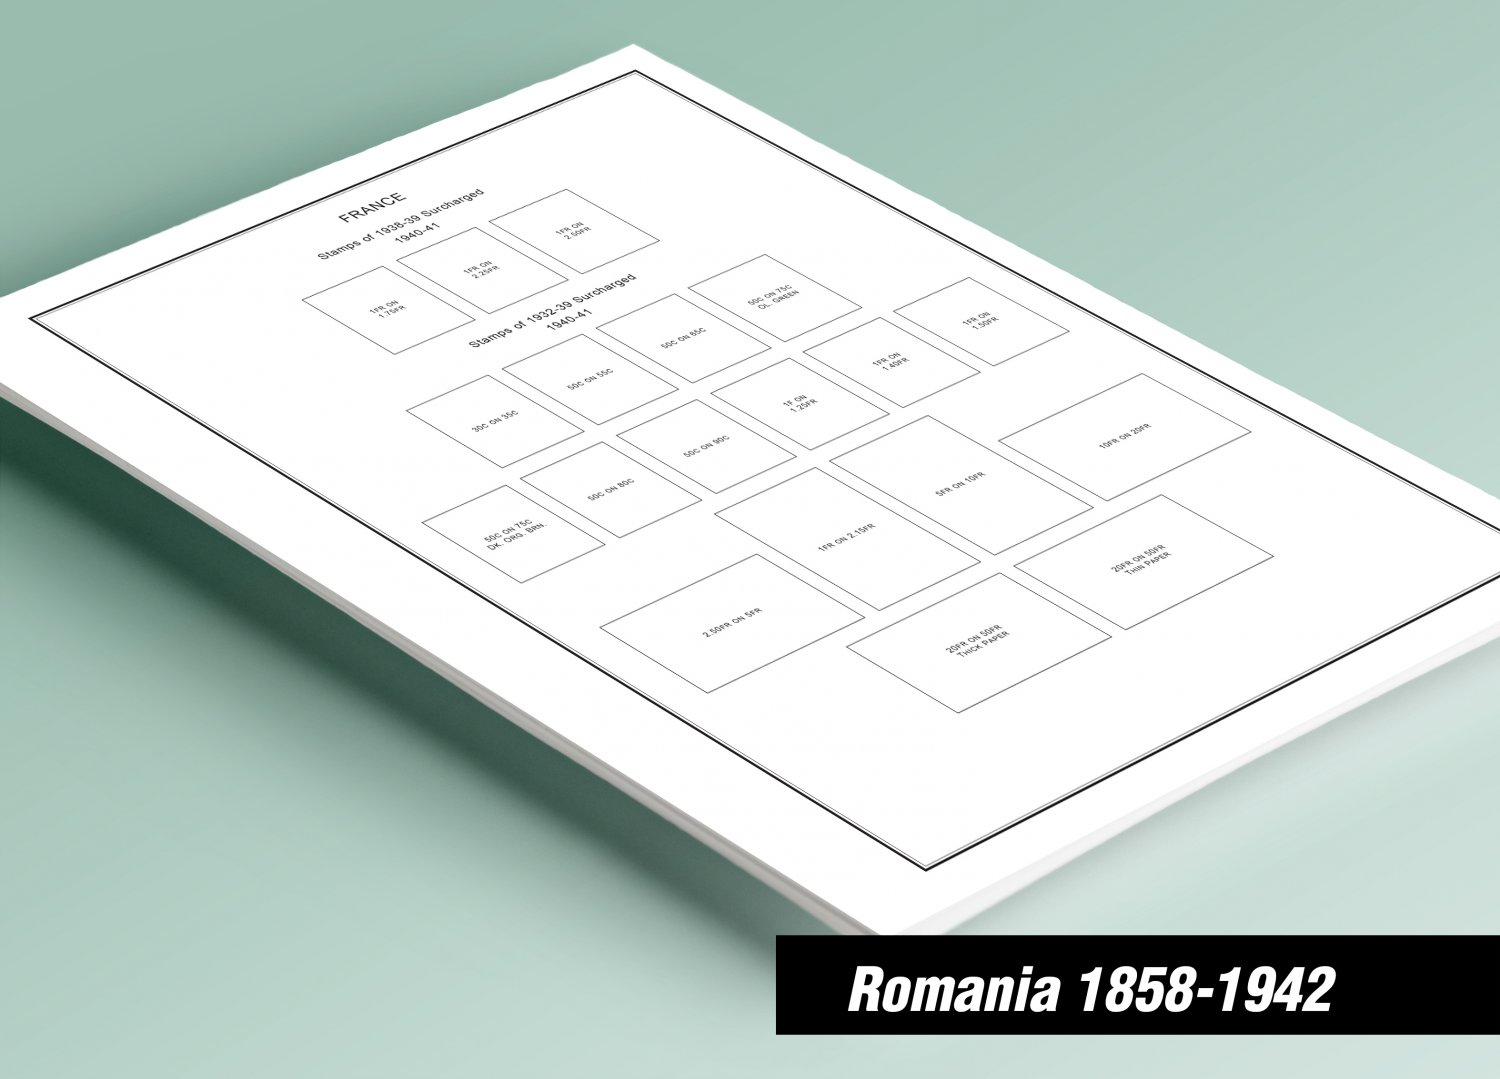 PRINTED ROMANIA [CLASS.] 1858-1942 STAMP ALBUM PAGES (76 pages)